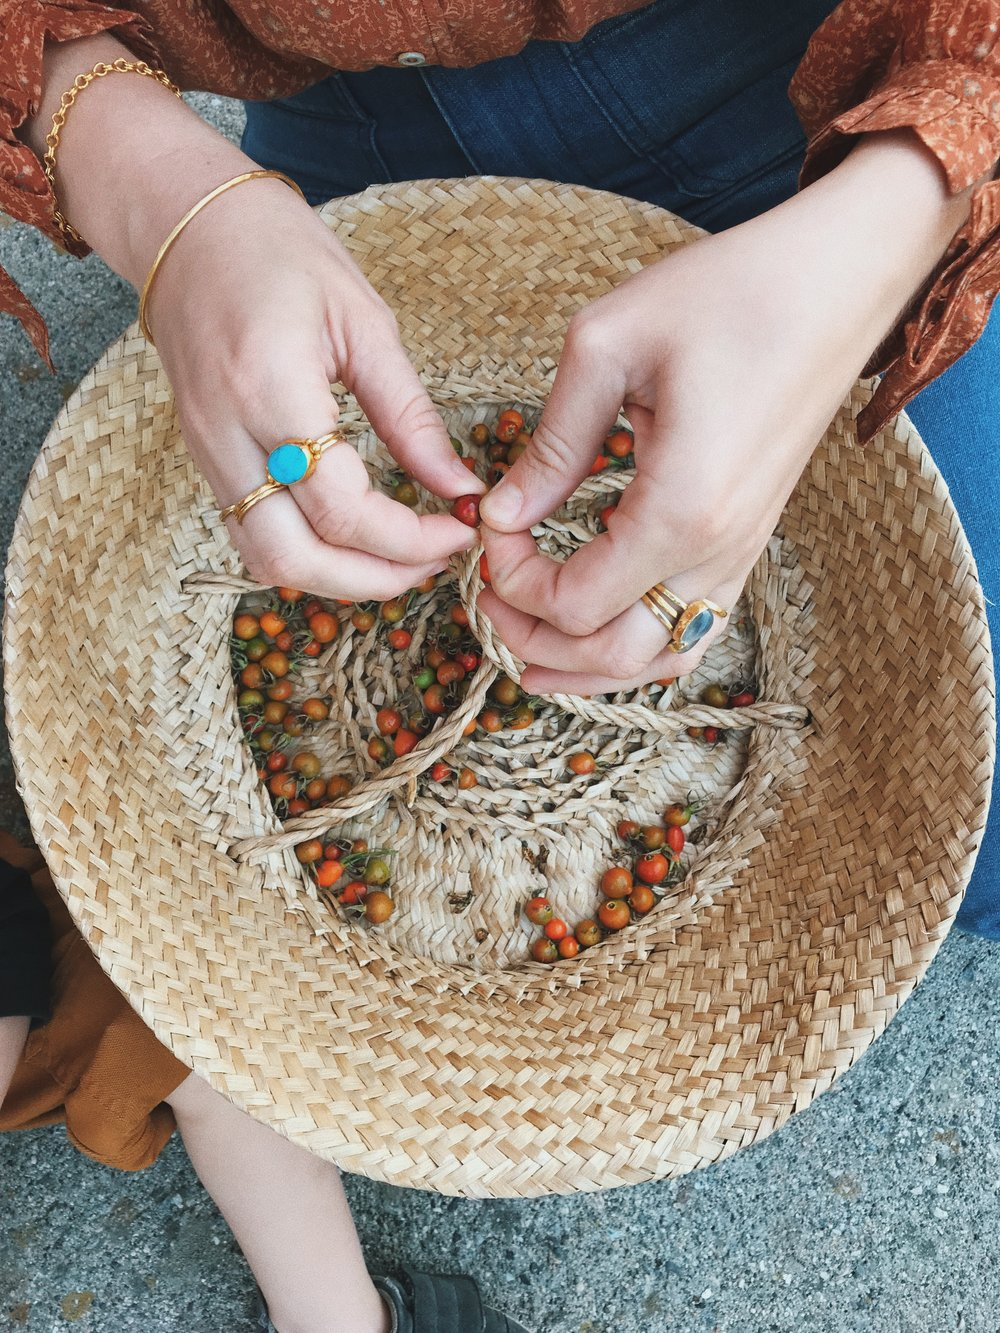 Autumn Rituals - After a fruitful and busy Summer, Autumn rituals are an incredible way to help us shift into a slower, more intention pace. The two rituals shared below are favorites, one for using what we have harvested, and the other for giving back to the Earth to make sure we have bountiful harvests in the years to come.